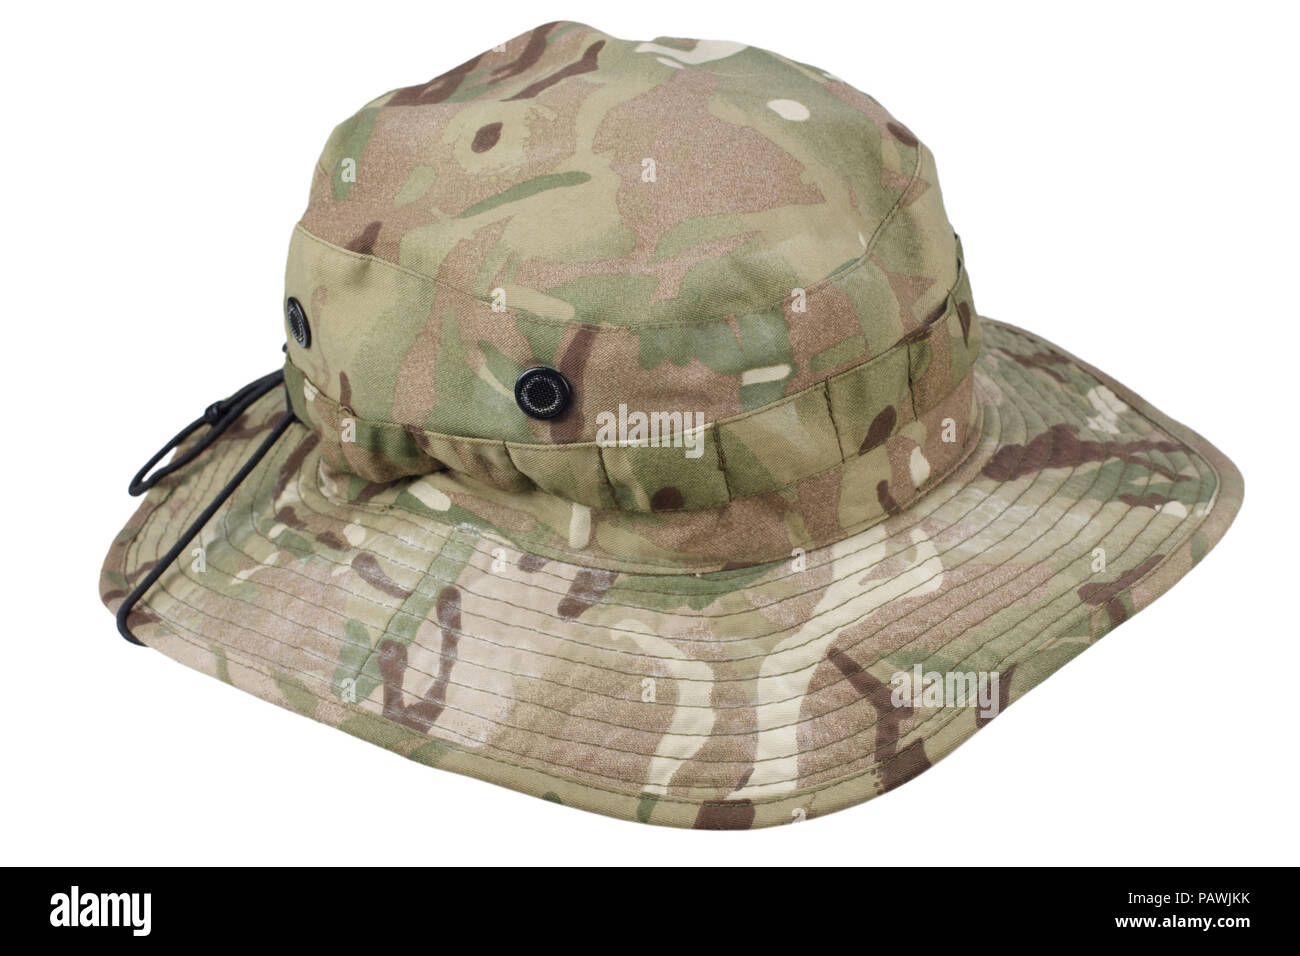 boonie hat isolated Stock Photo  213234439 - Alamy f46c4d8b69b